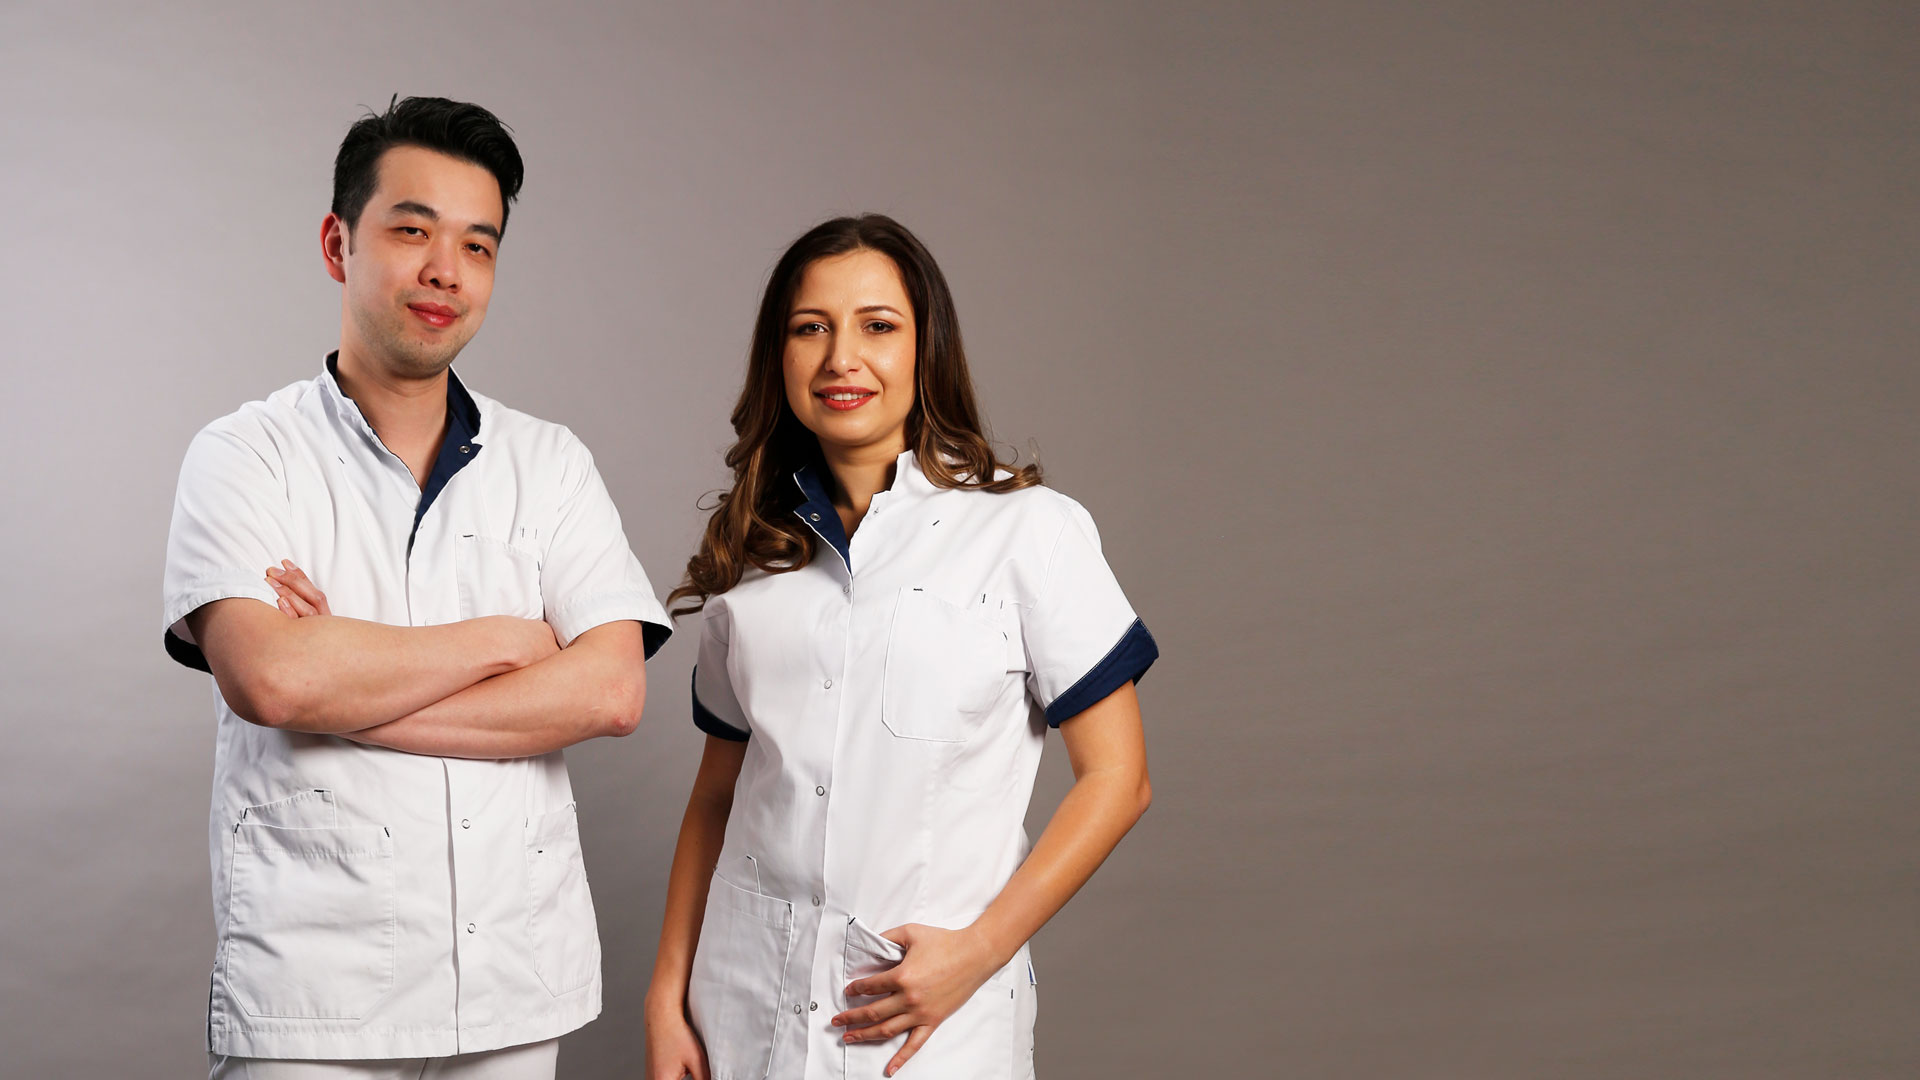 Doctor Wing Yuen and Doctor Stefania Stana